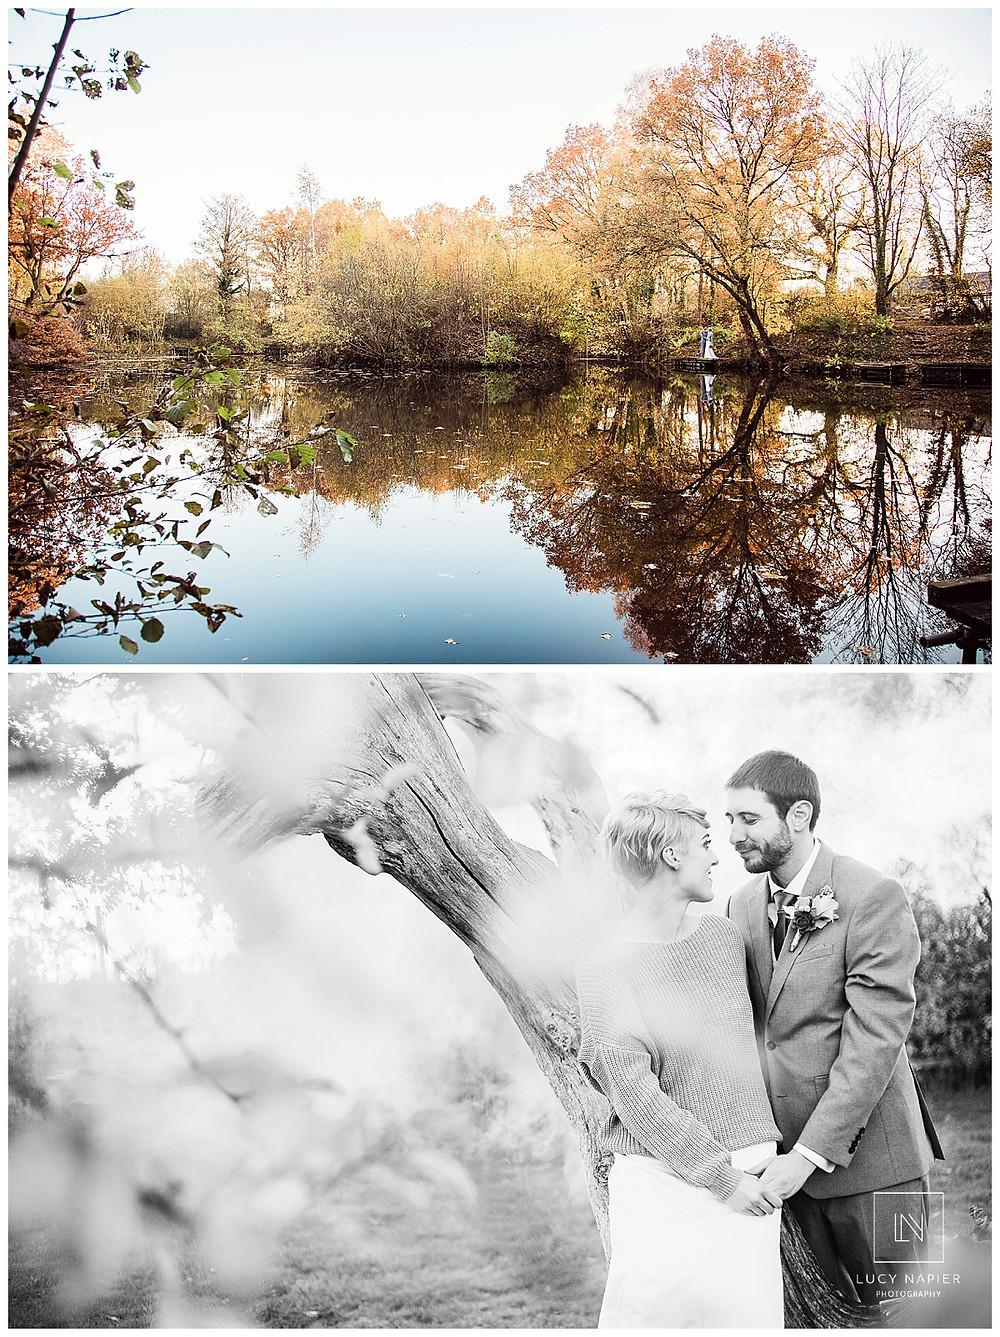 the bride and groom look out over the lake, their reflection in the water, autumn colours in the trees